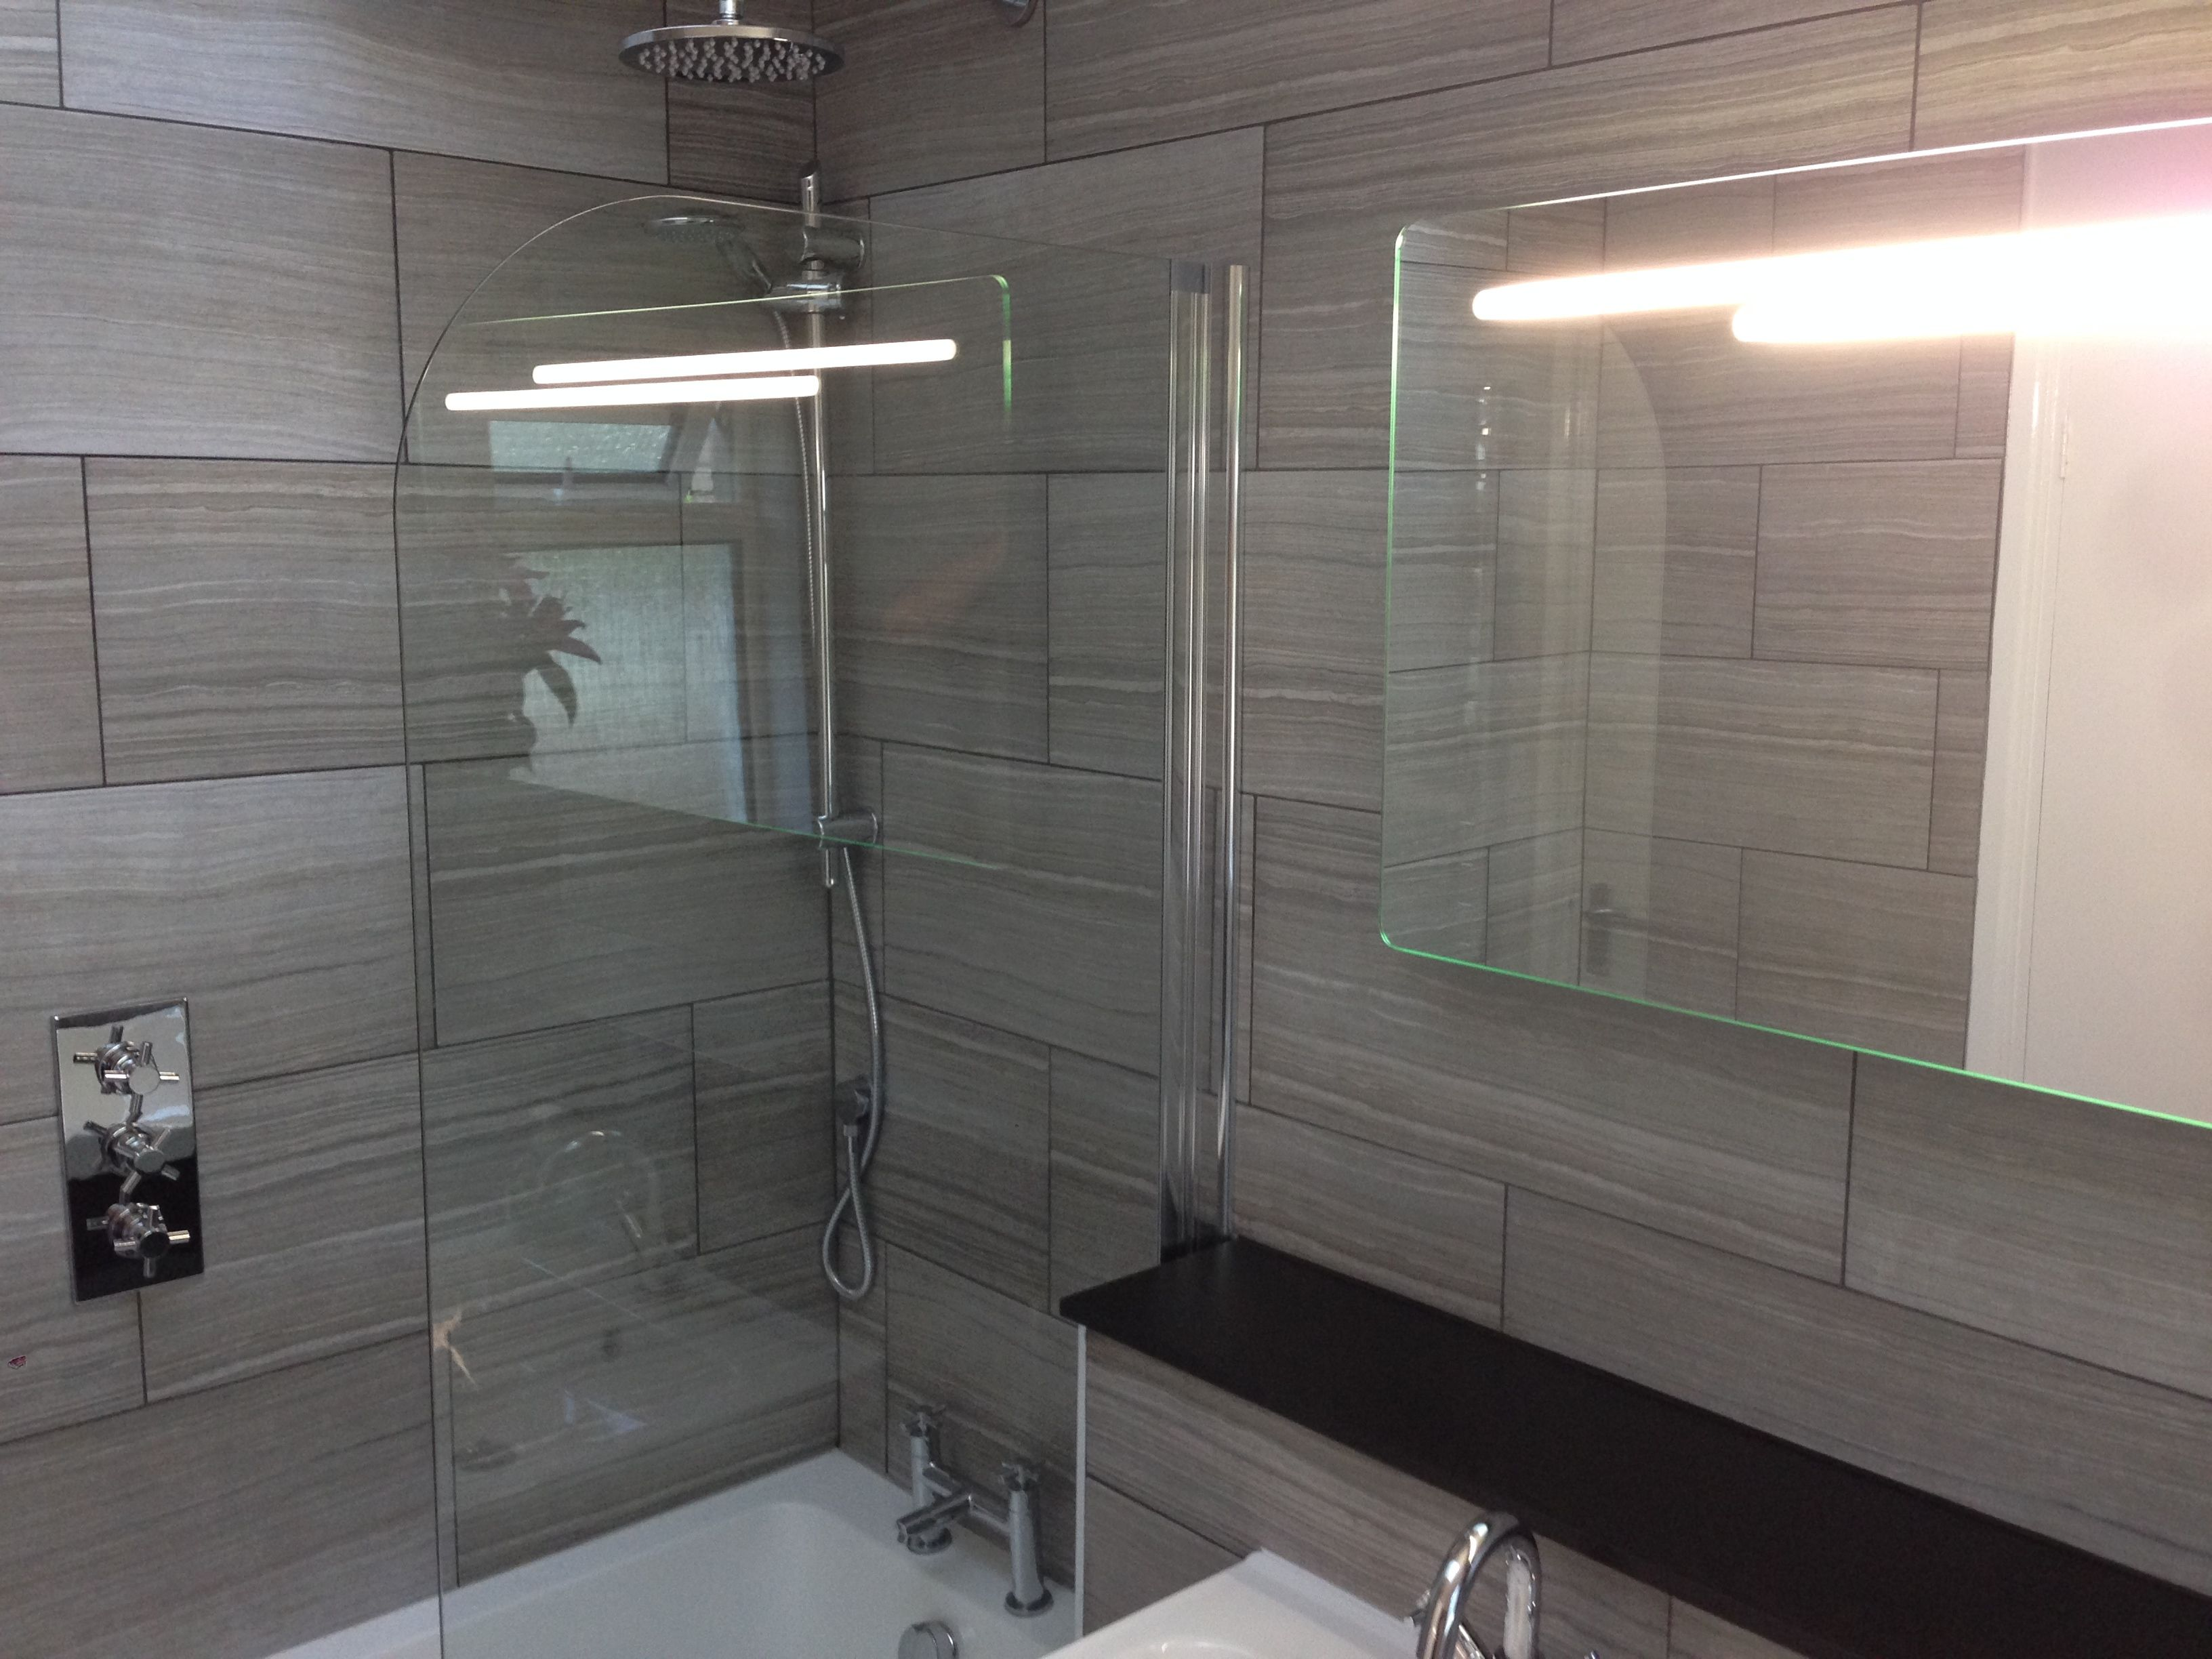 eramosa white shower - Google Search | Tile shower ideas ...